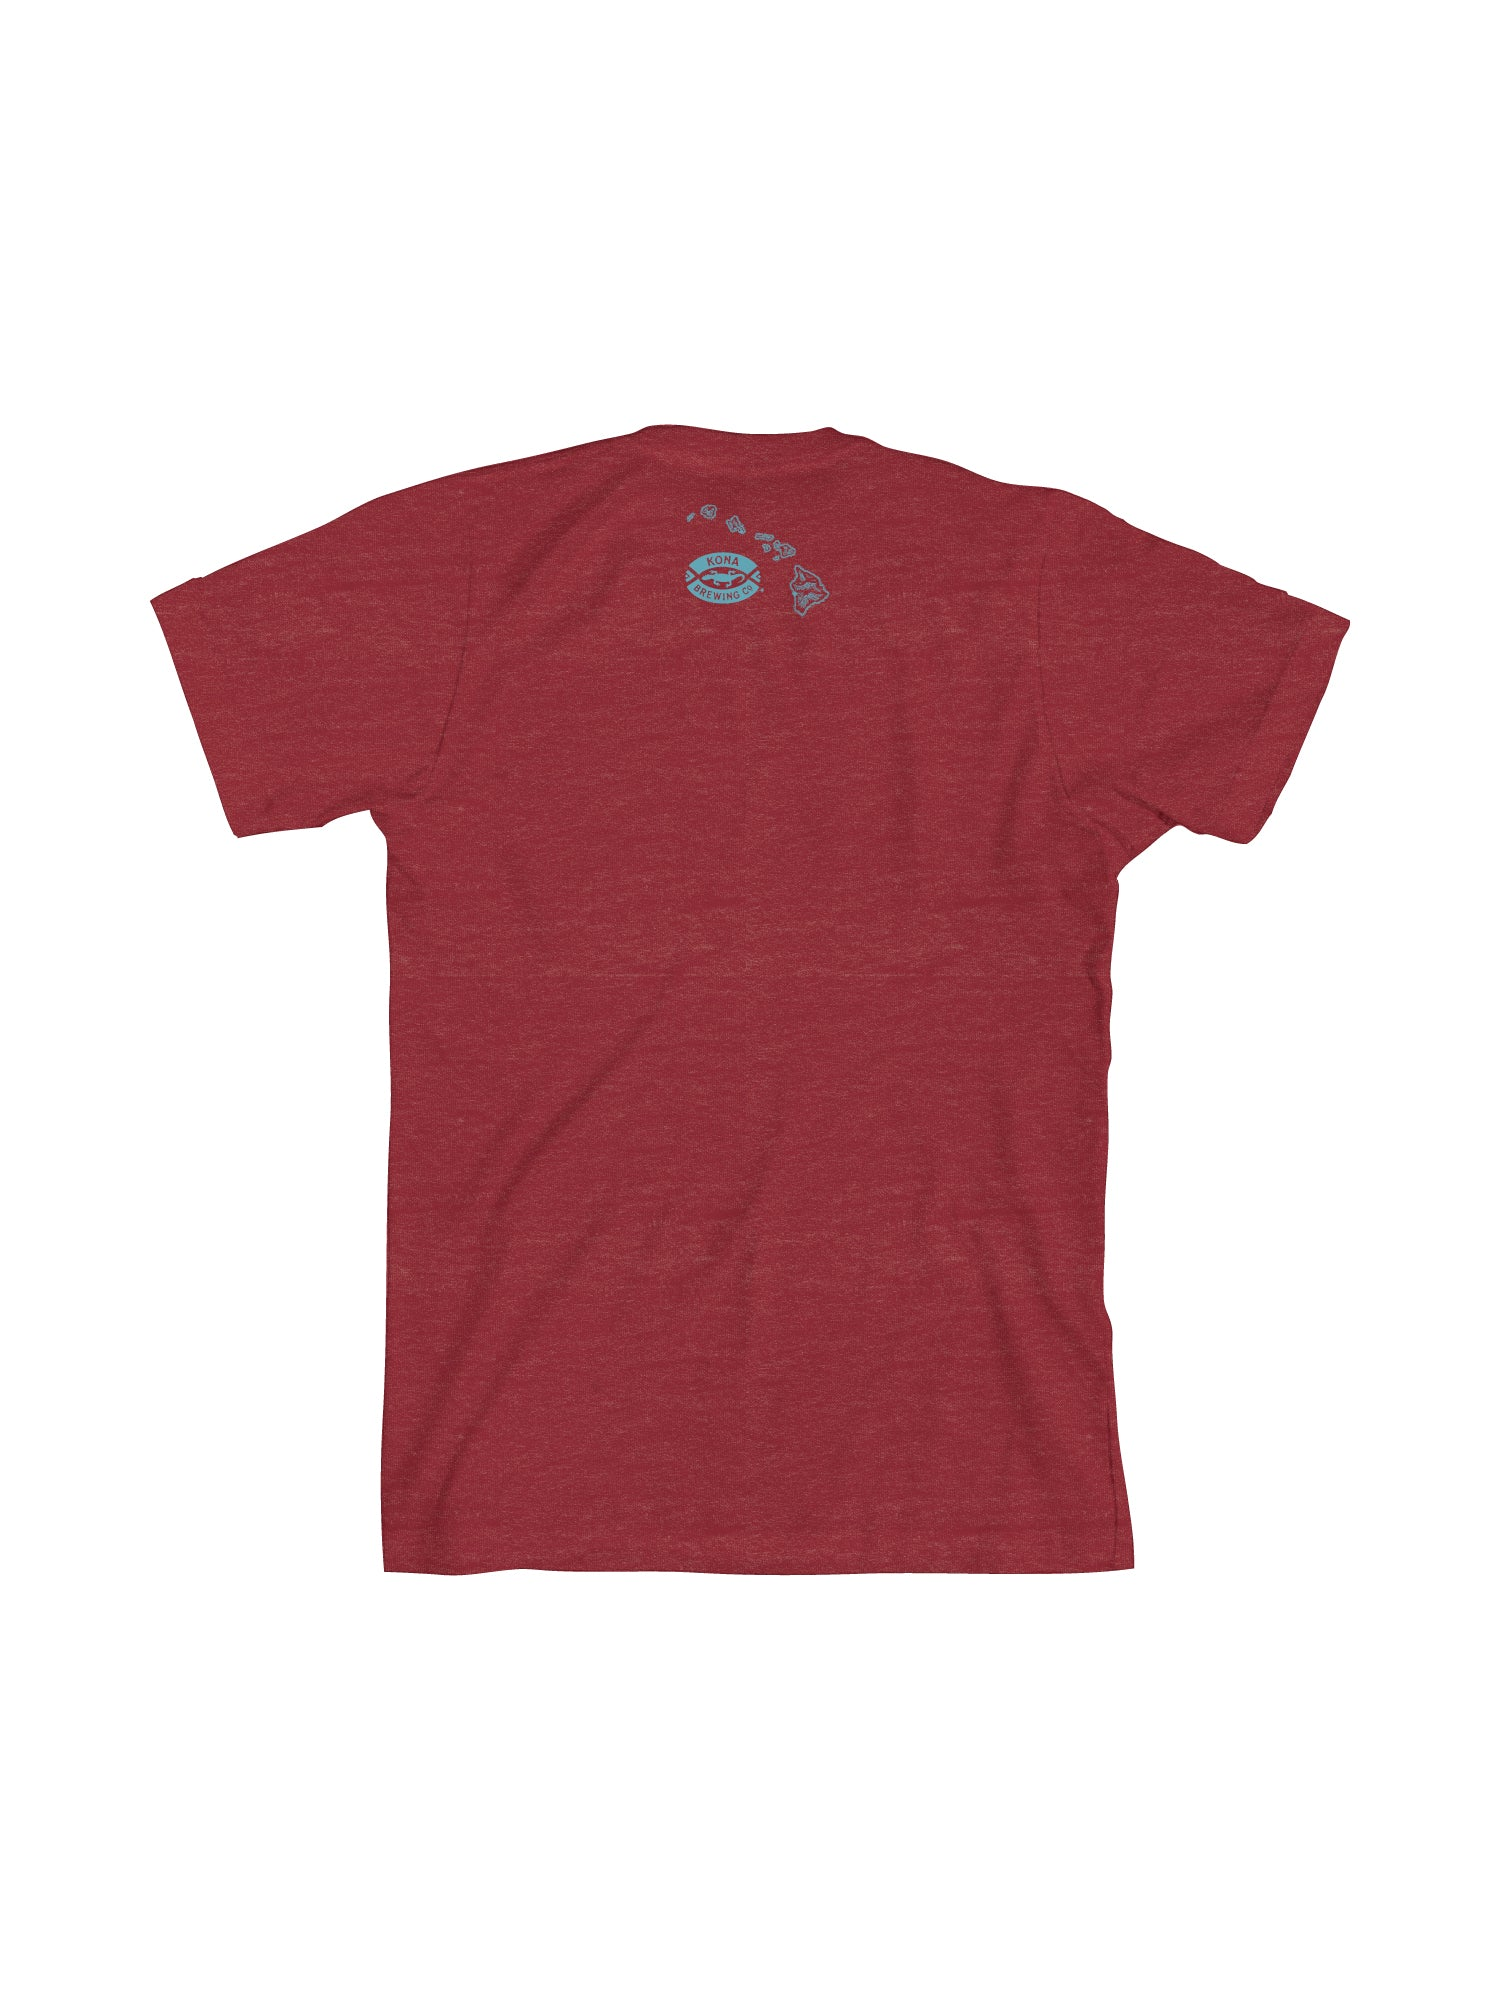 KONA LIQUID ALOHA MEN TEE- RED - Anderson Bros Design and Supply